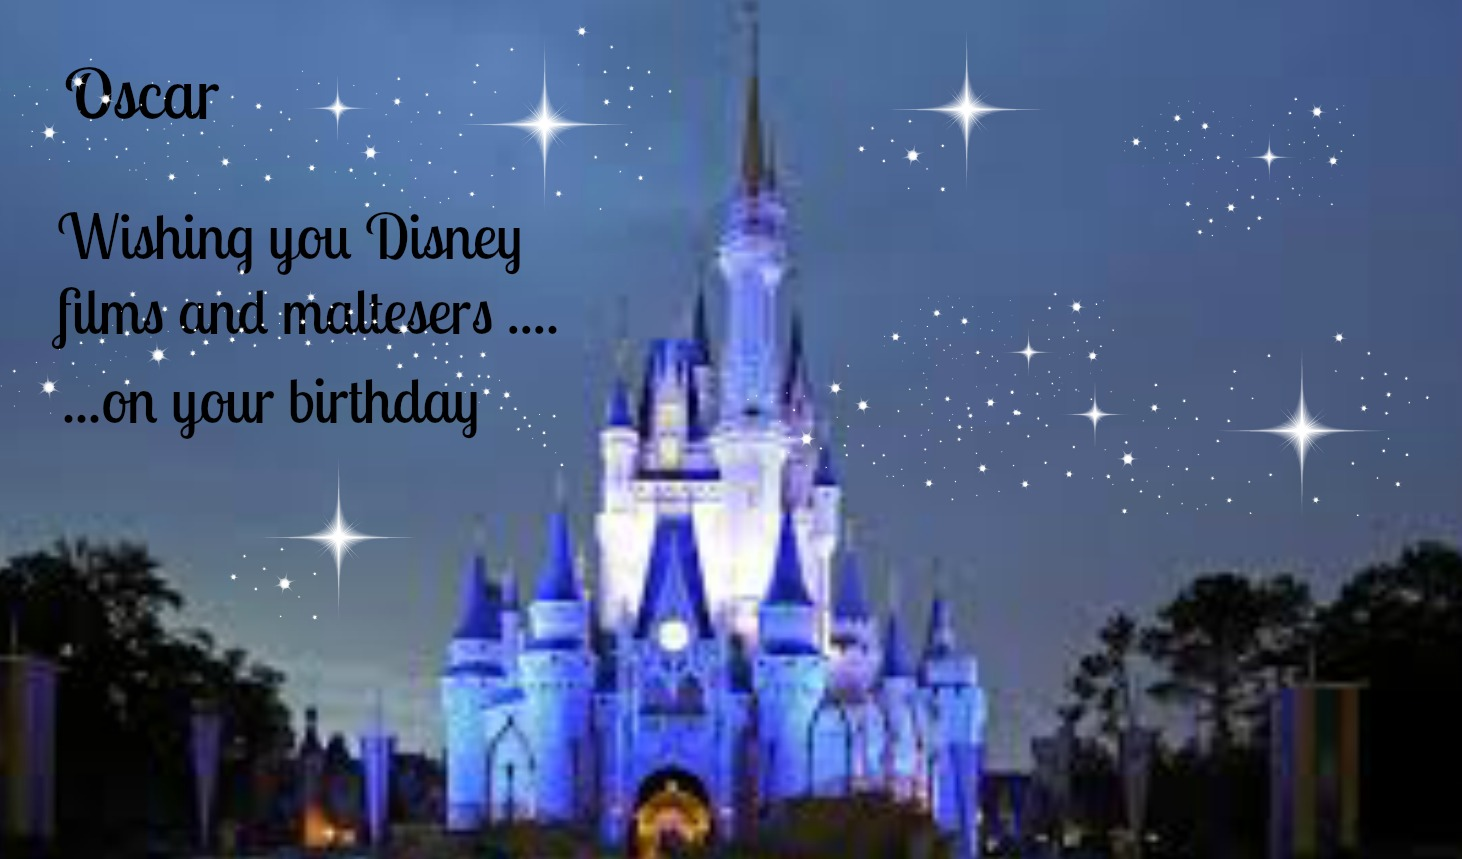 disney birthday wishes Birthday Wishes: I wish you Disney films and maltesers | SUPPORT  disney birthday wishes